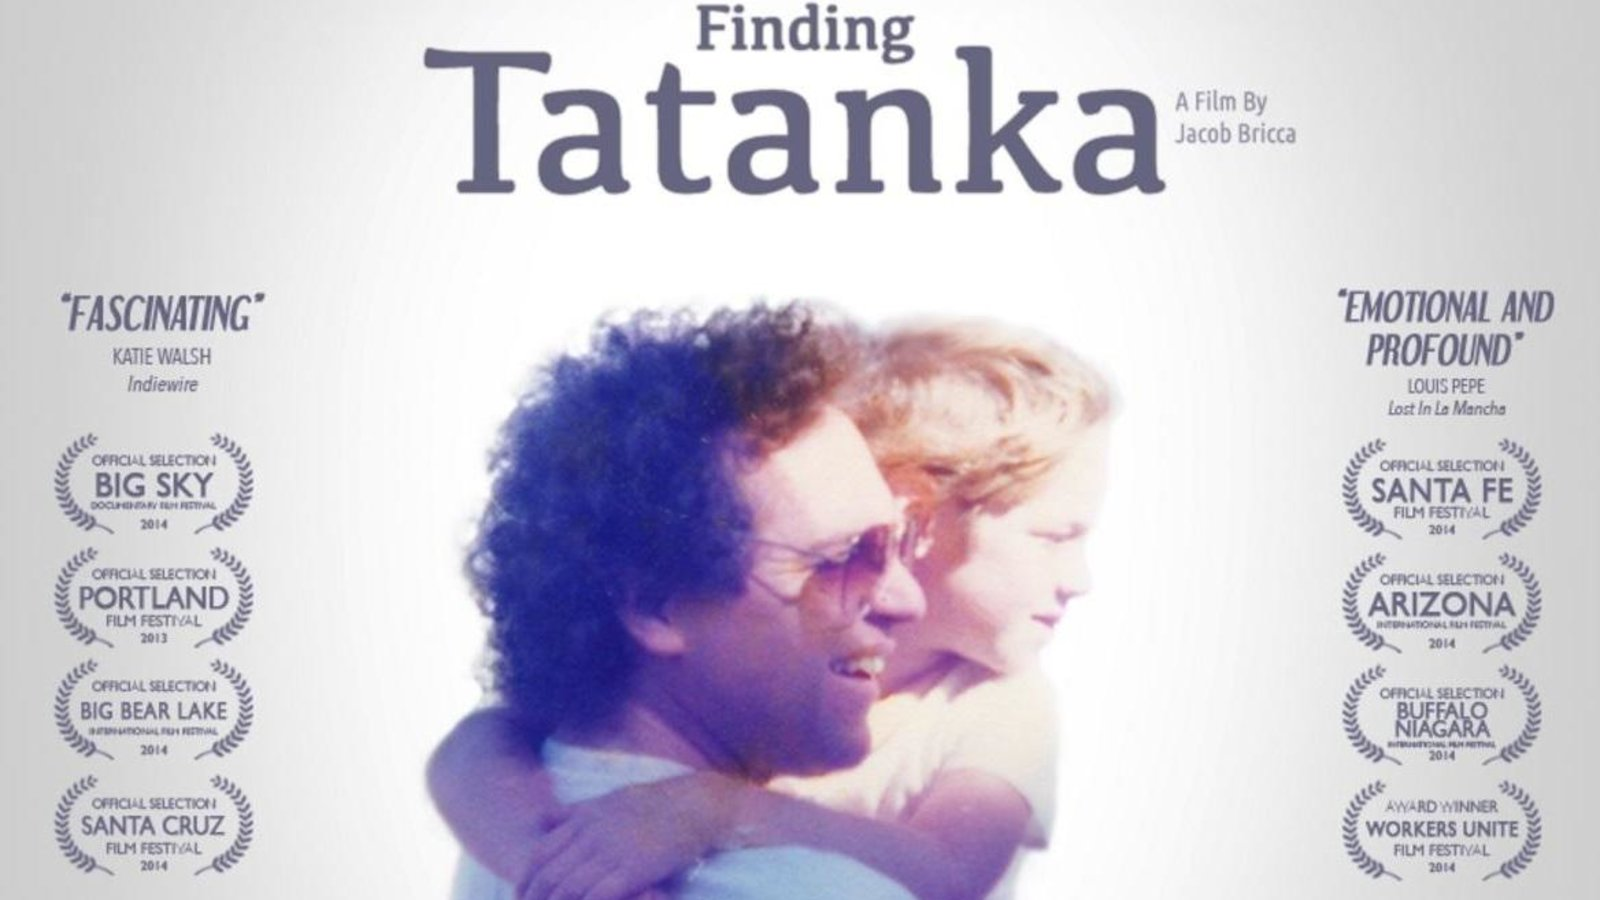 Finding Tatanka - A Bay Area Activist and His Family